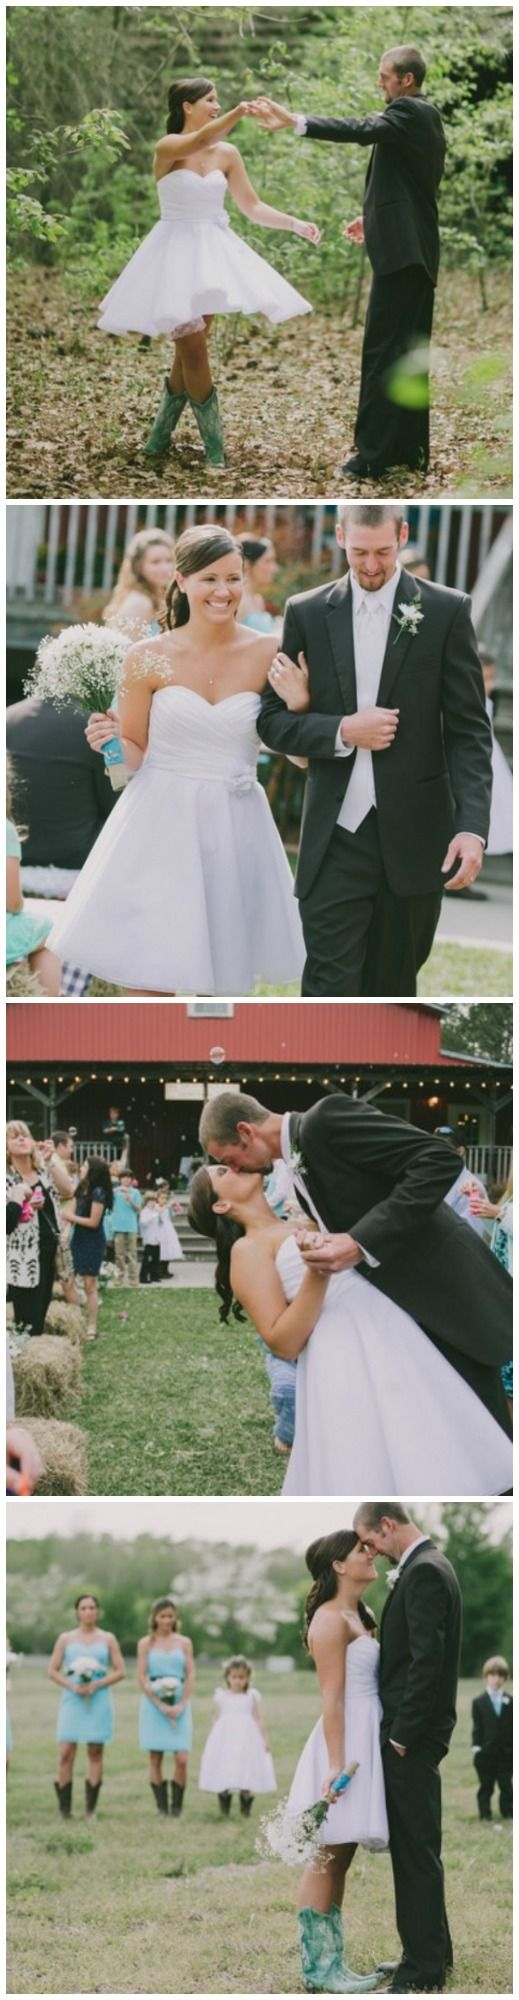 Country wedding with bride in boots!